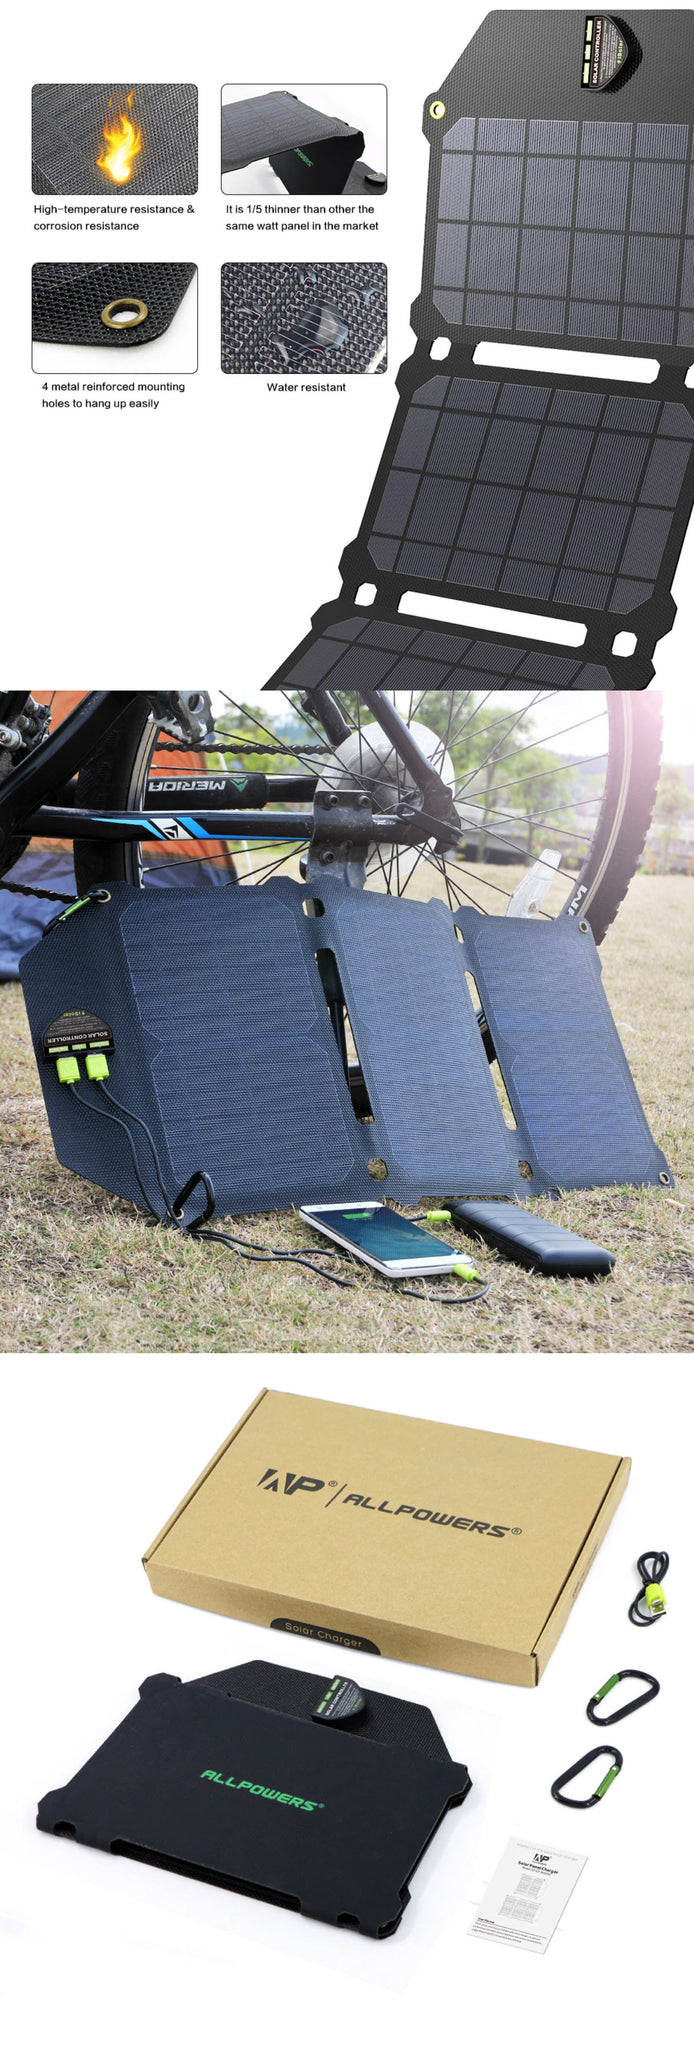 ALLPOWERS 21W Super Solar Charger Product Images